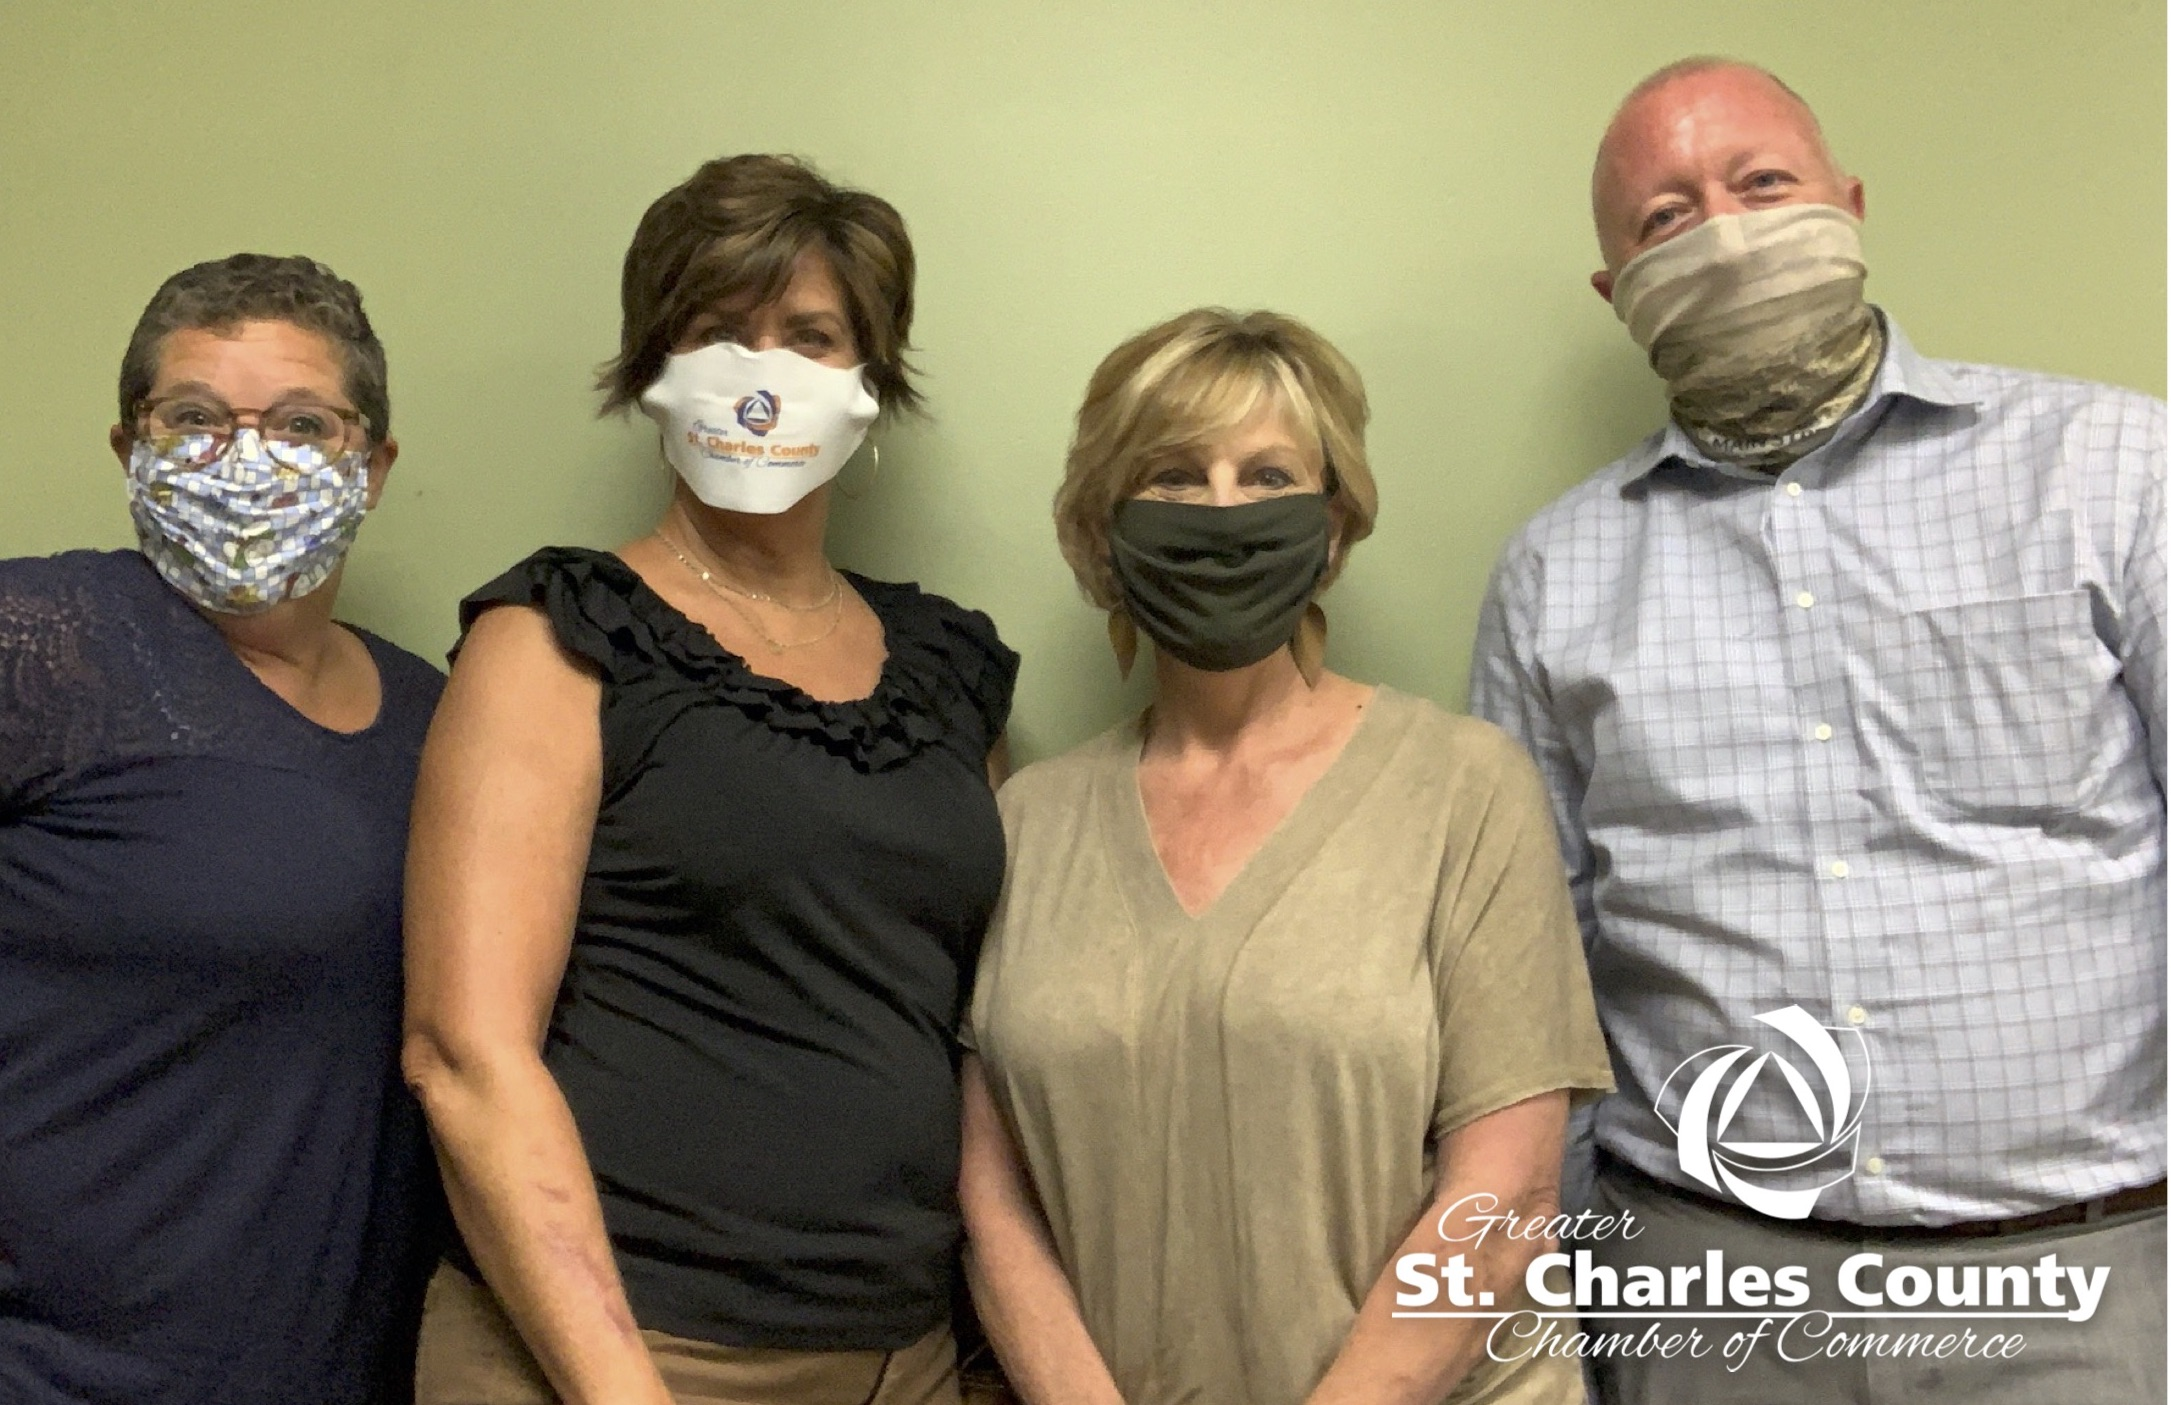 Image for Chamber statement asks businesses & community members to follow CDC guidelines on mask wearing to aid in the health  of the economy